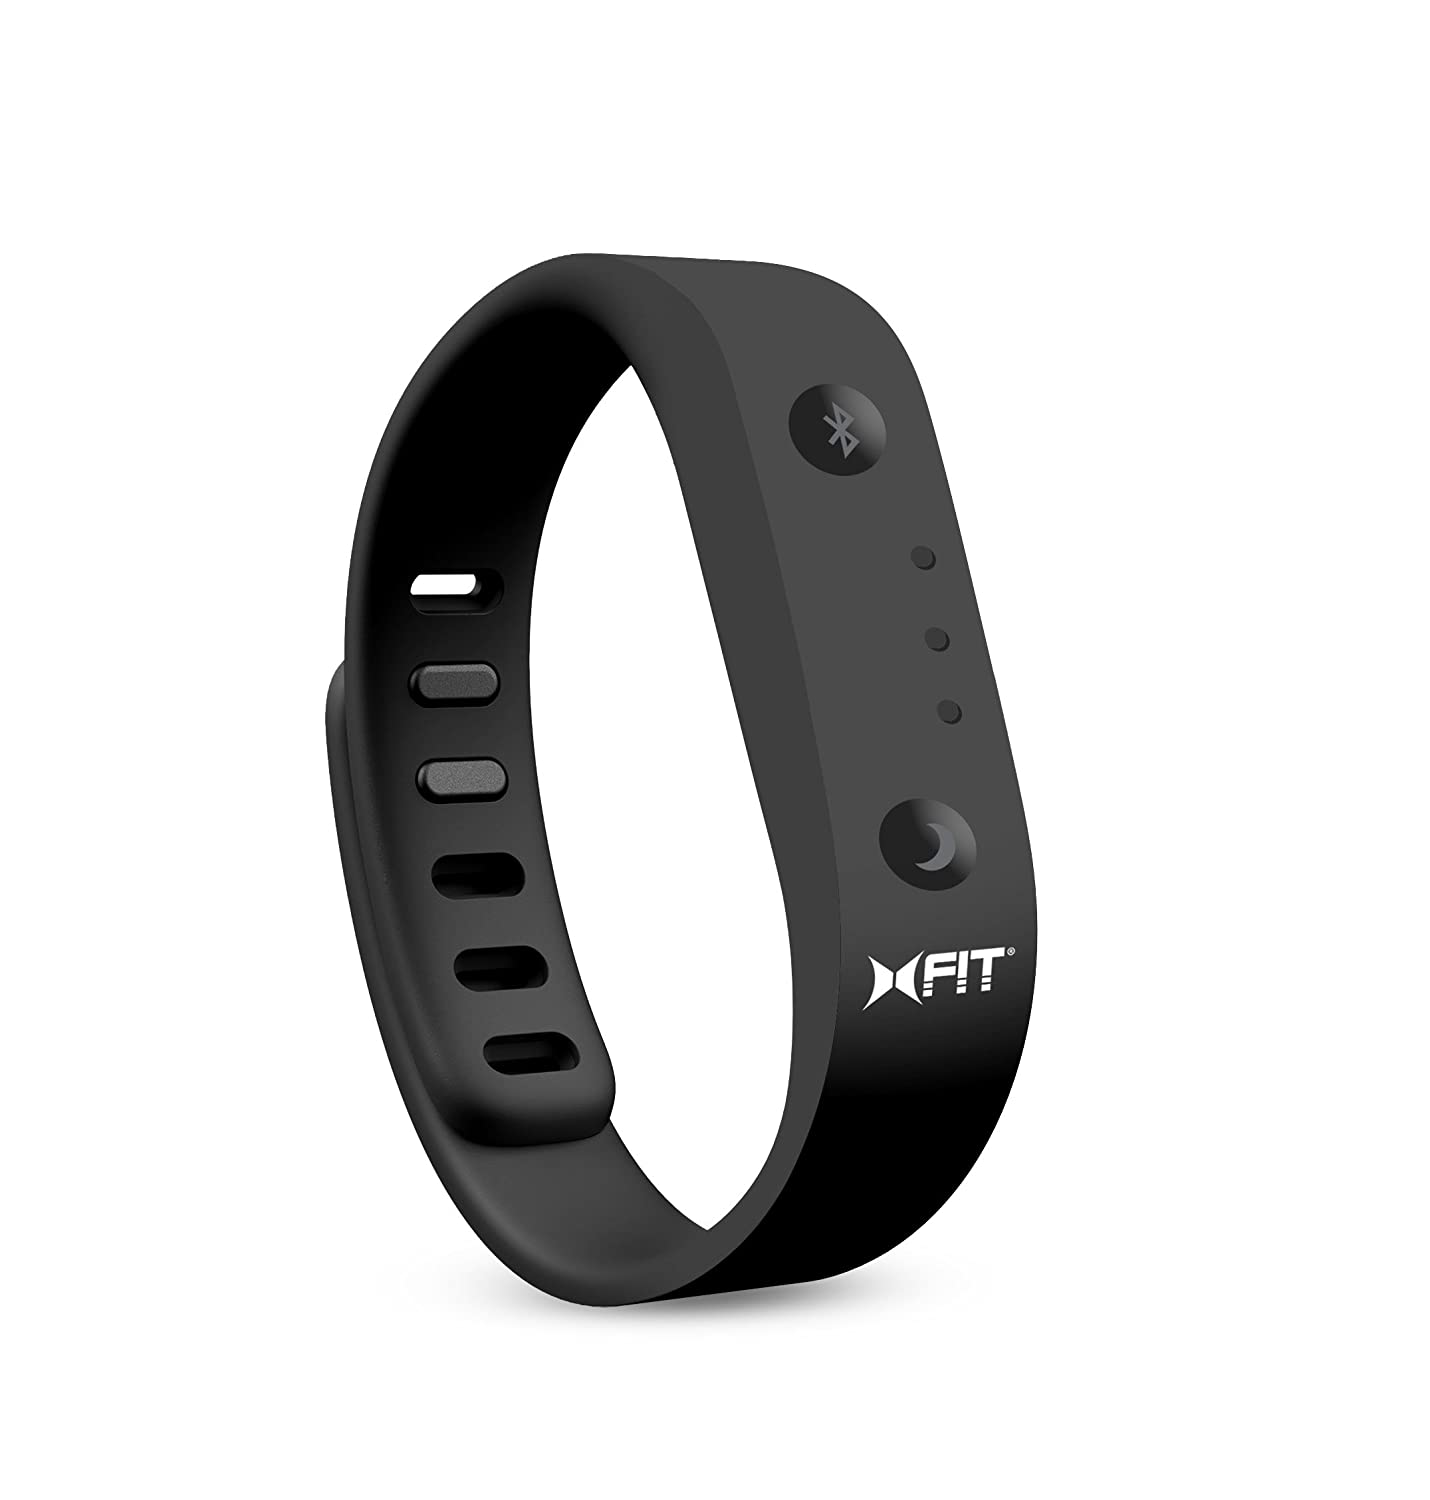 Xtreme 40411 Fitness Band